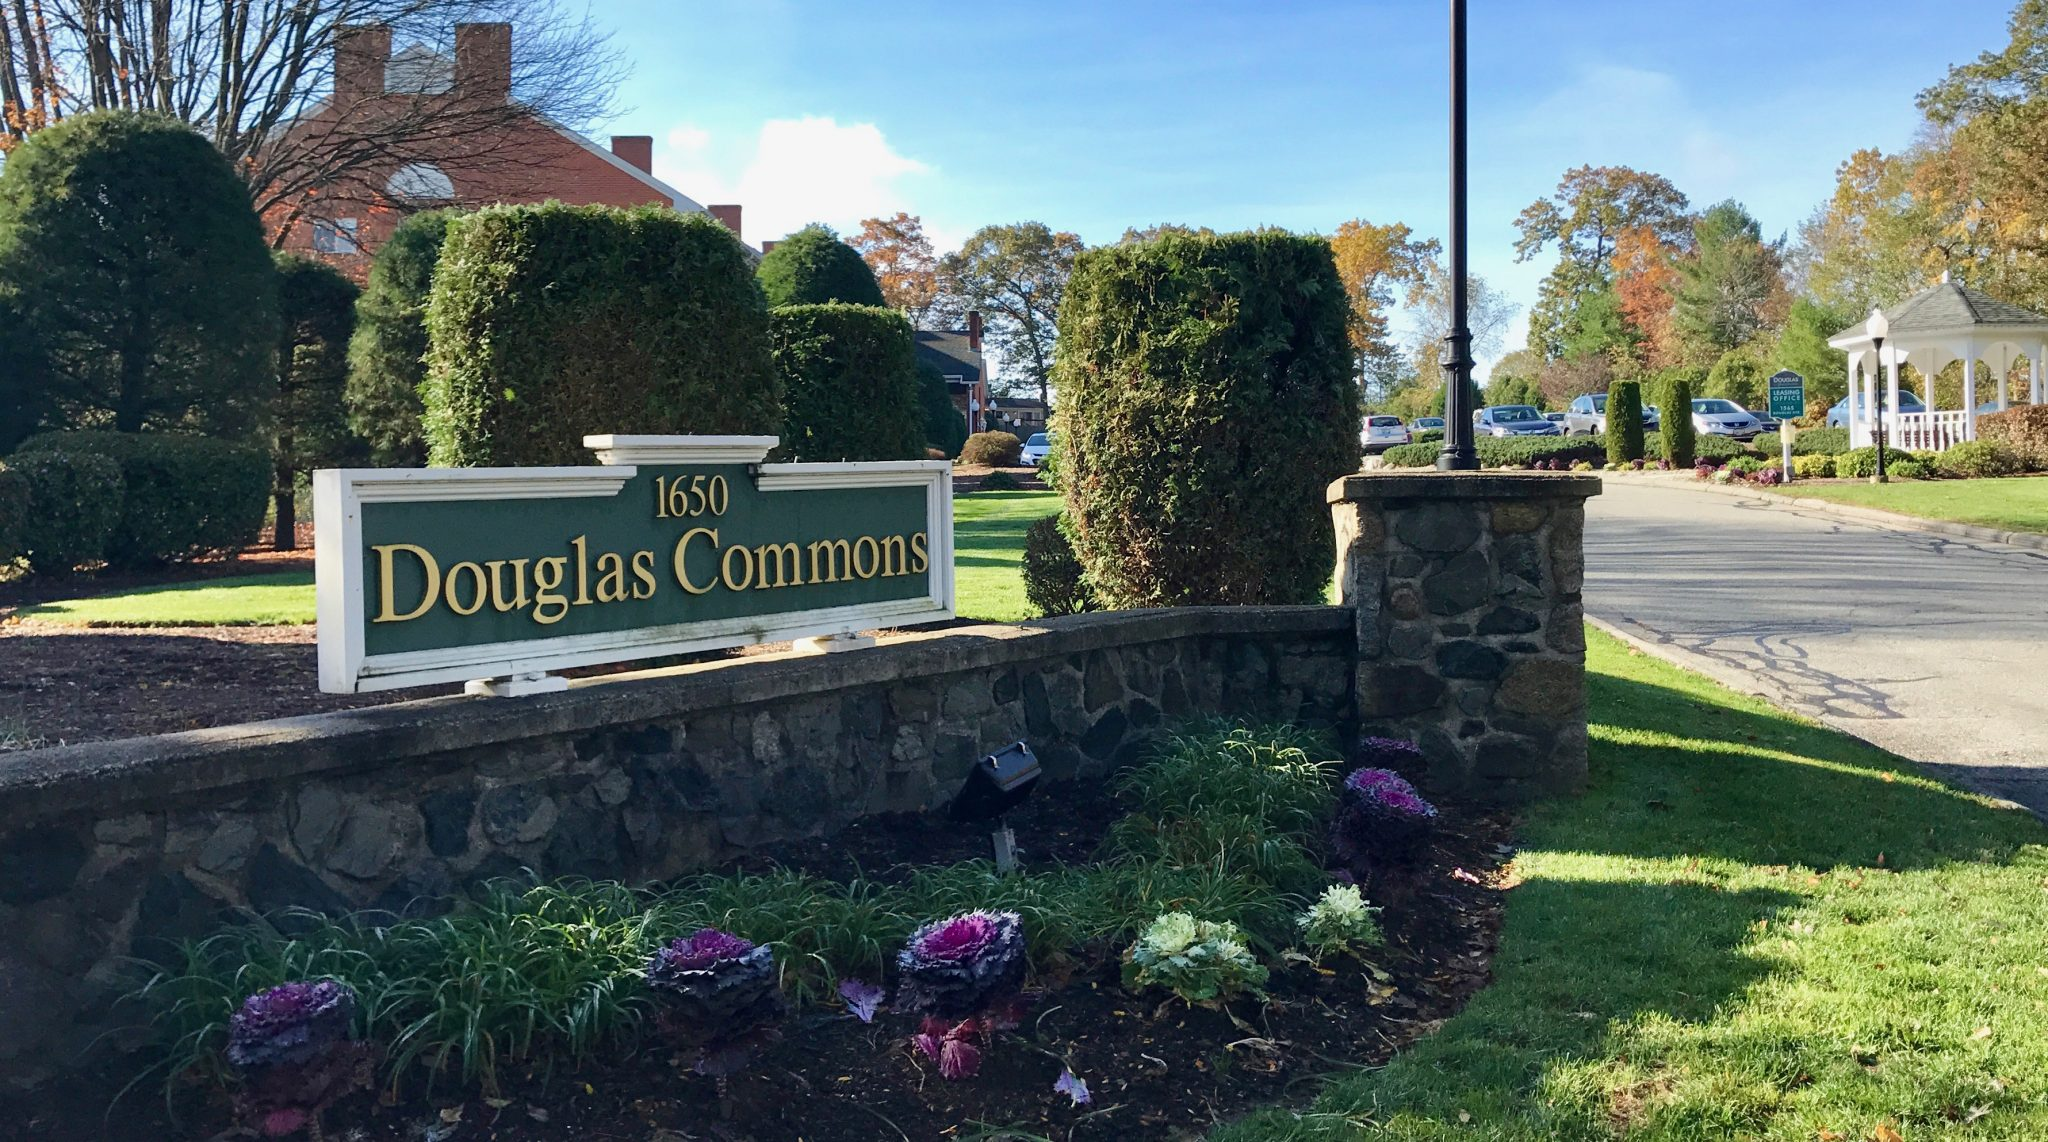 Douglas Commons in North Providence, RI